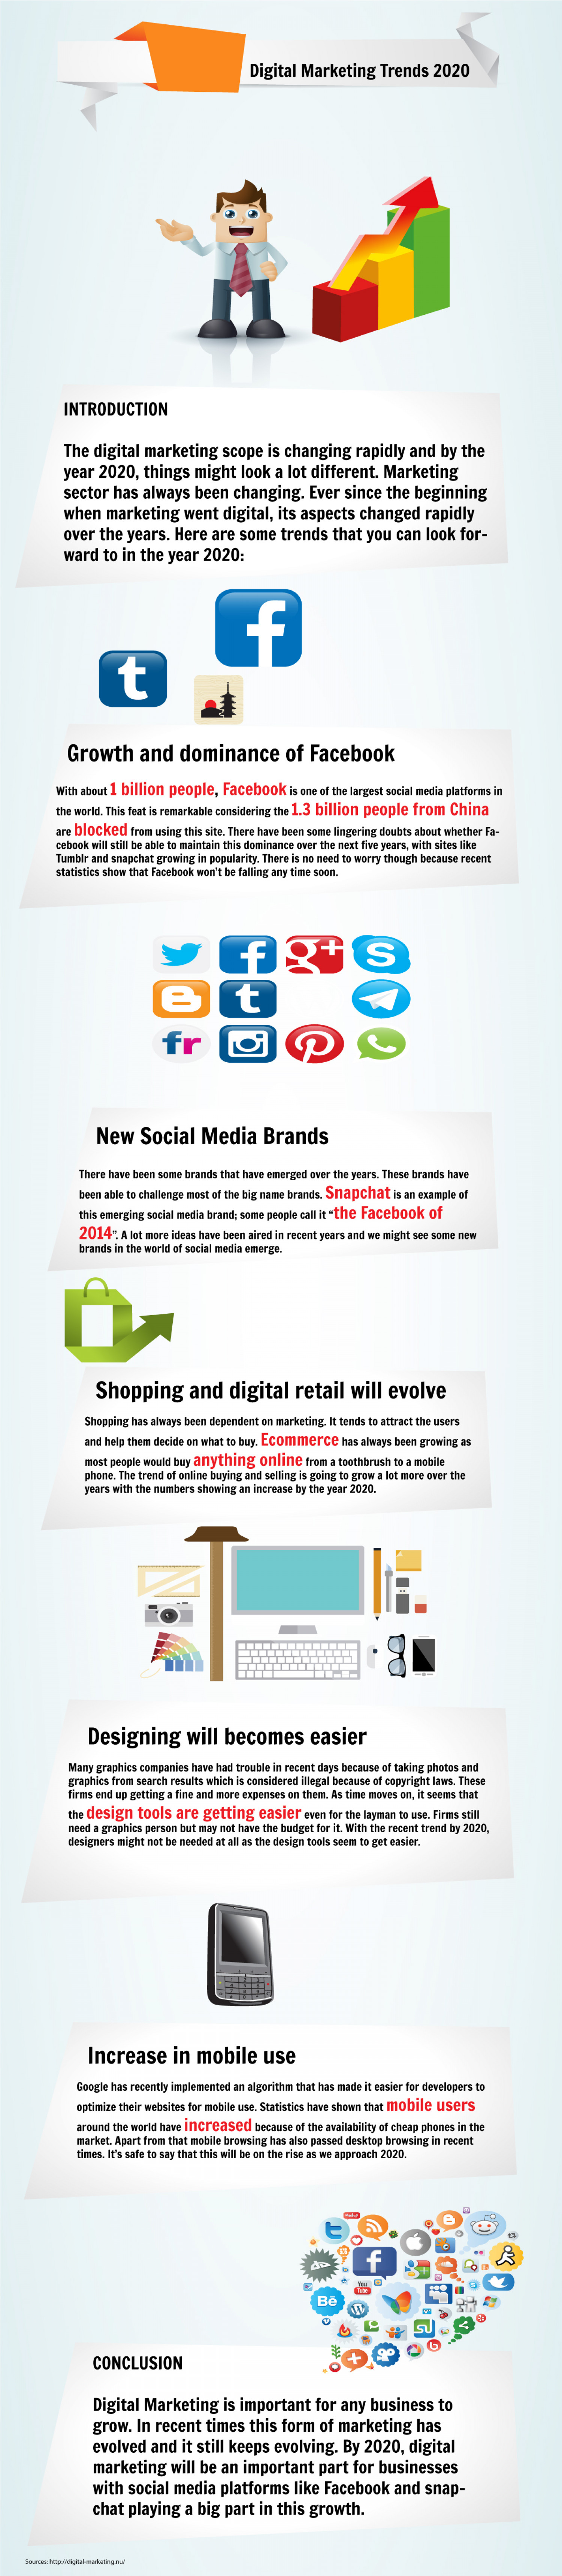 Digital Marketing Trends 2020 | Visual ly